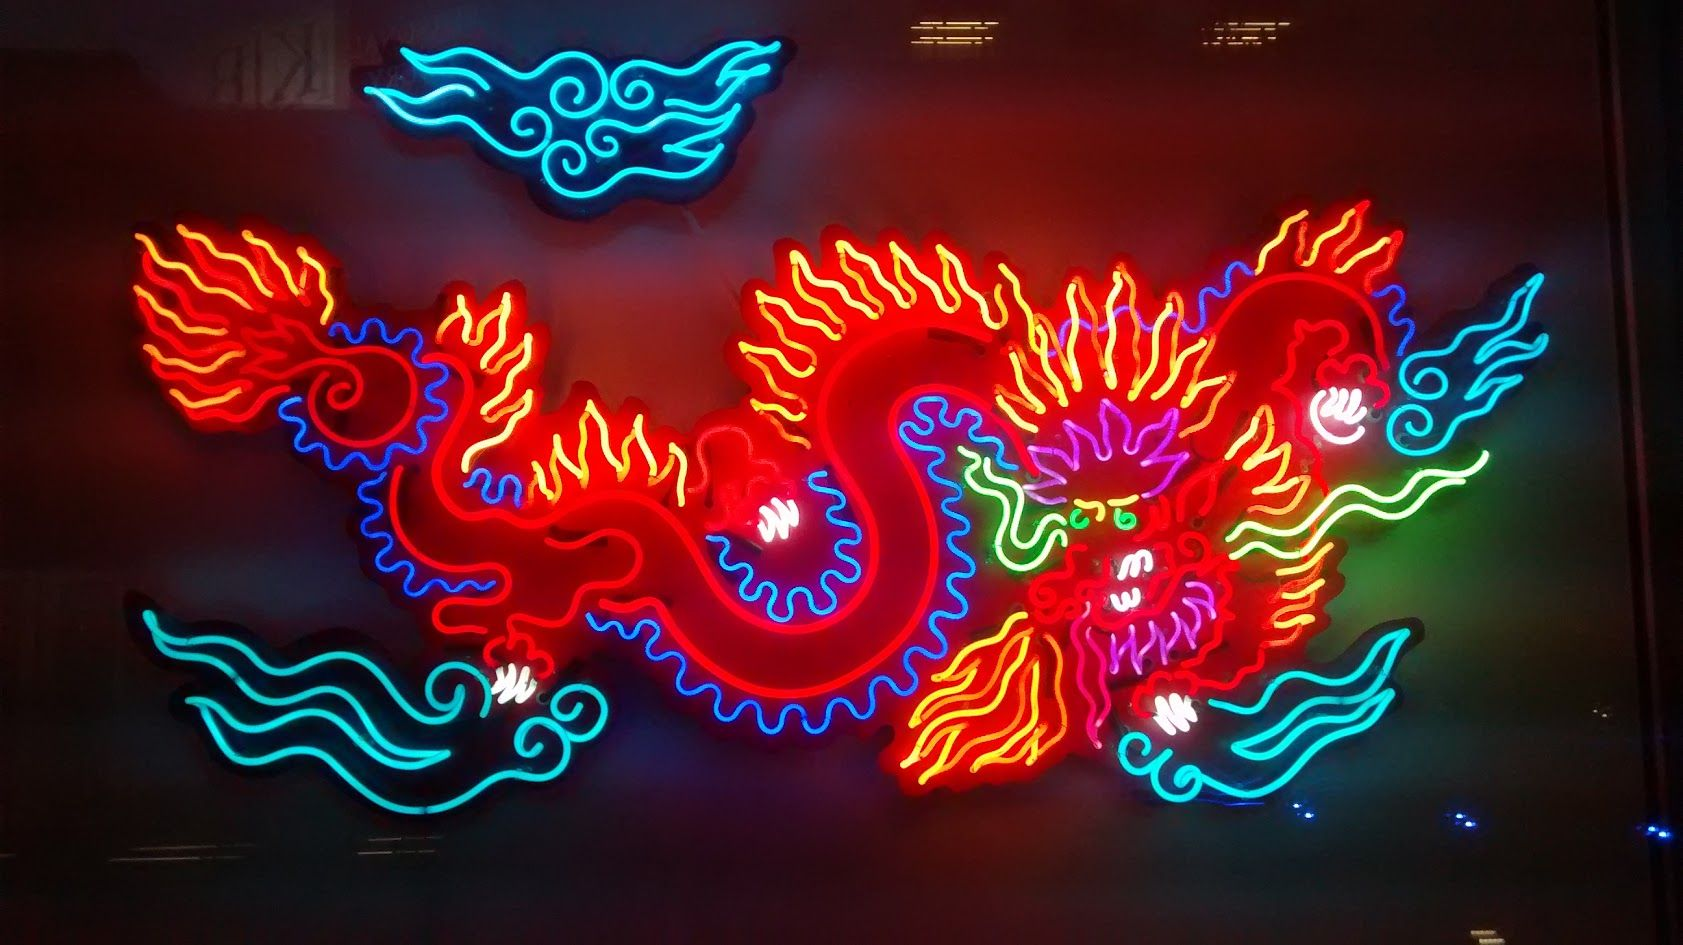 neon museum dragon light signs lights sign artist painting glow chinese word colors game letter aesthetic arte japanese bright ネオン